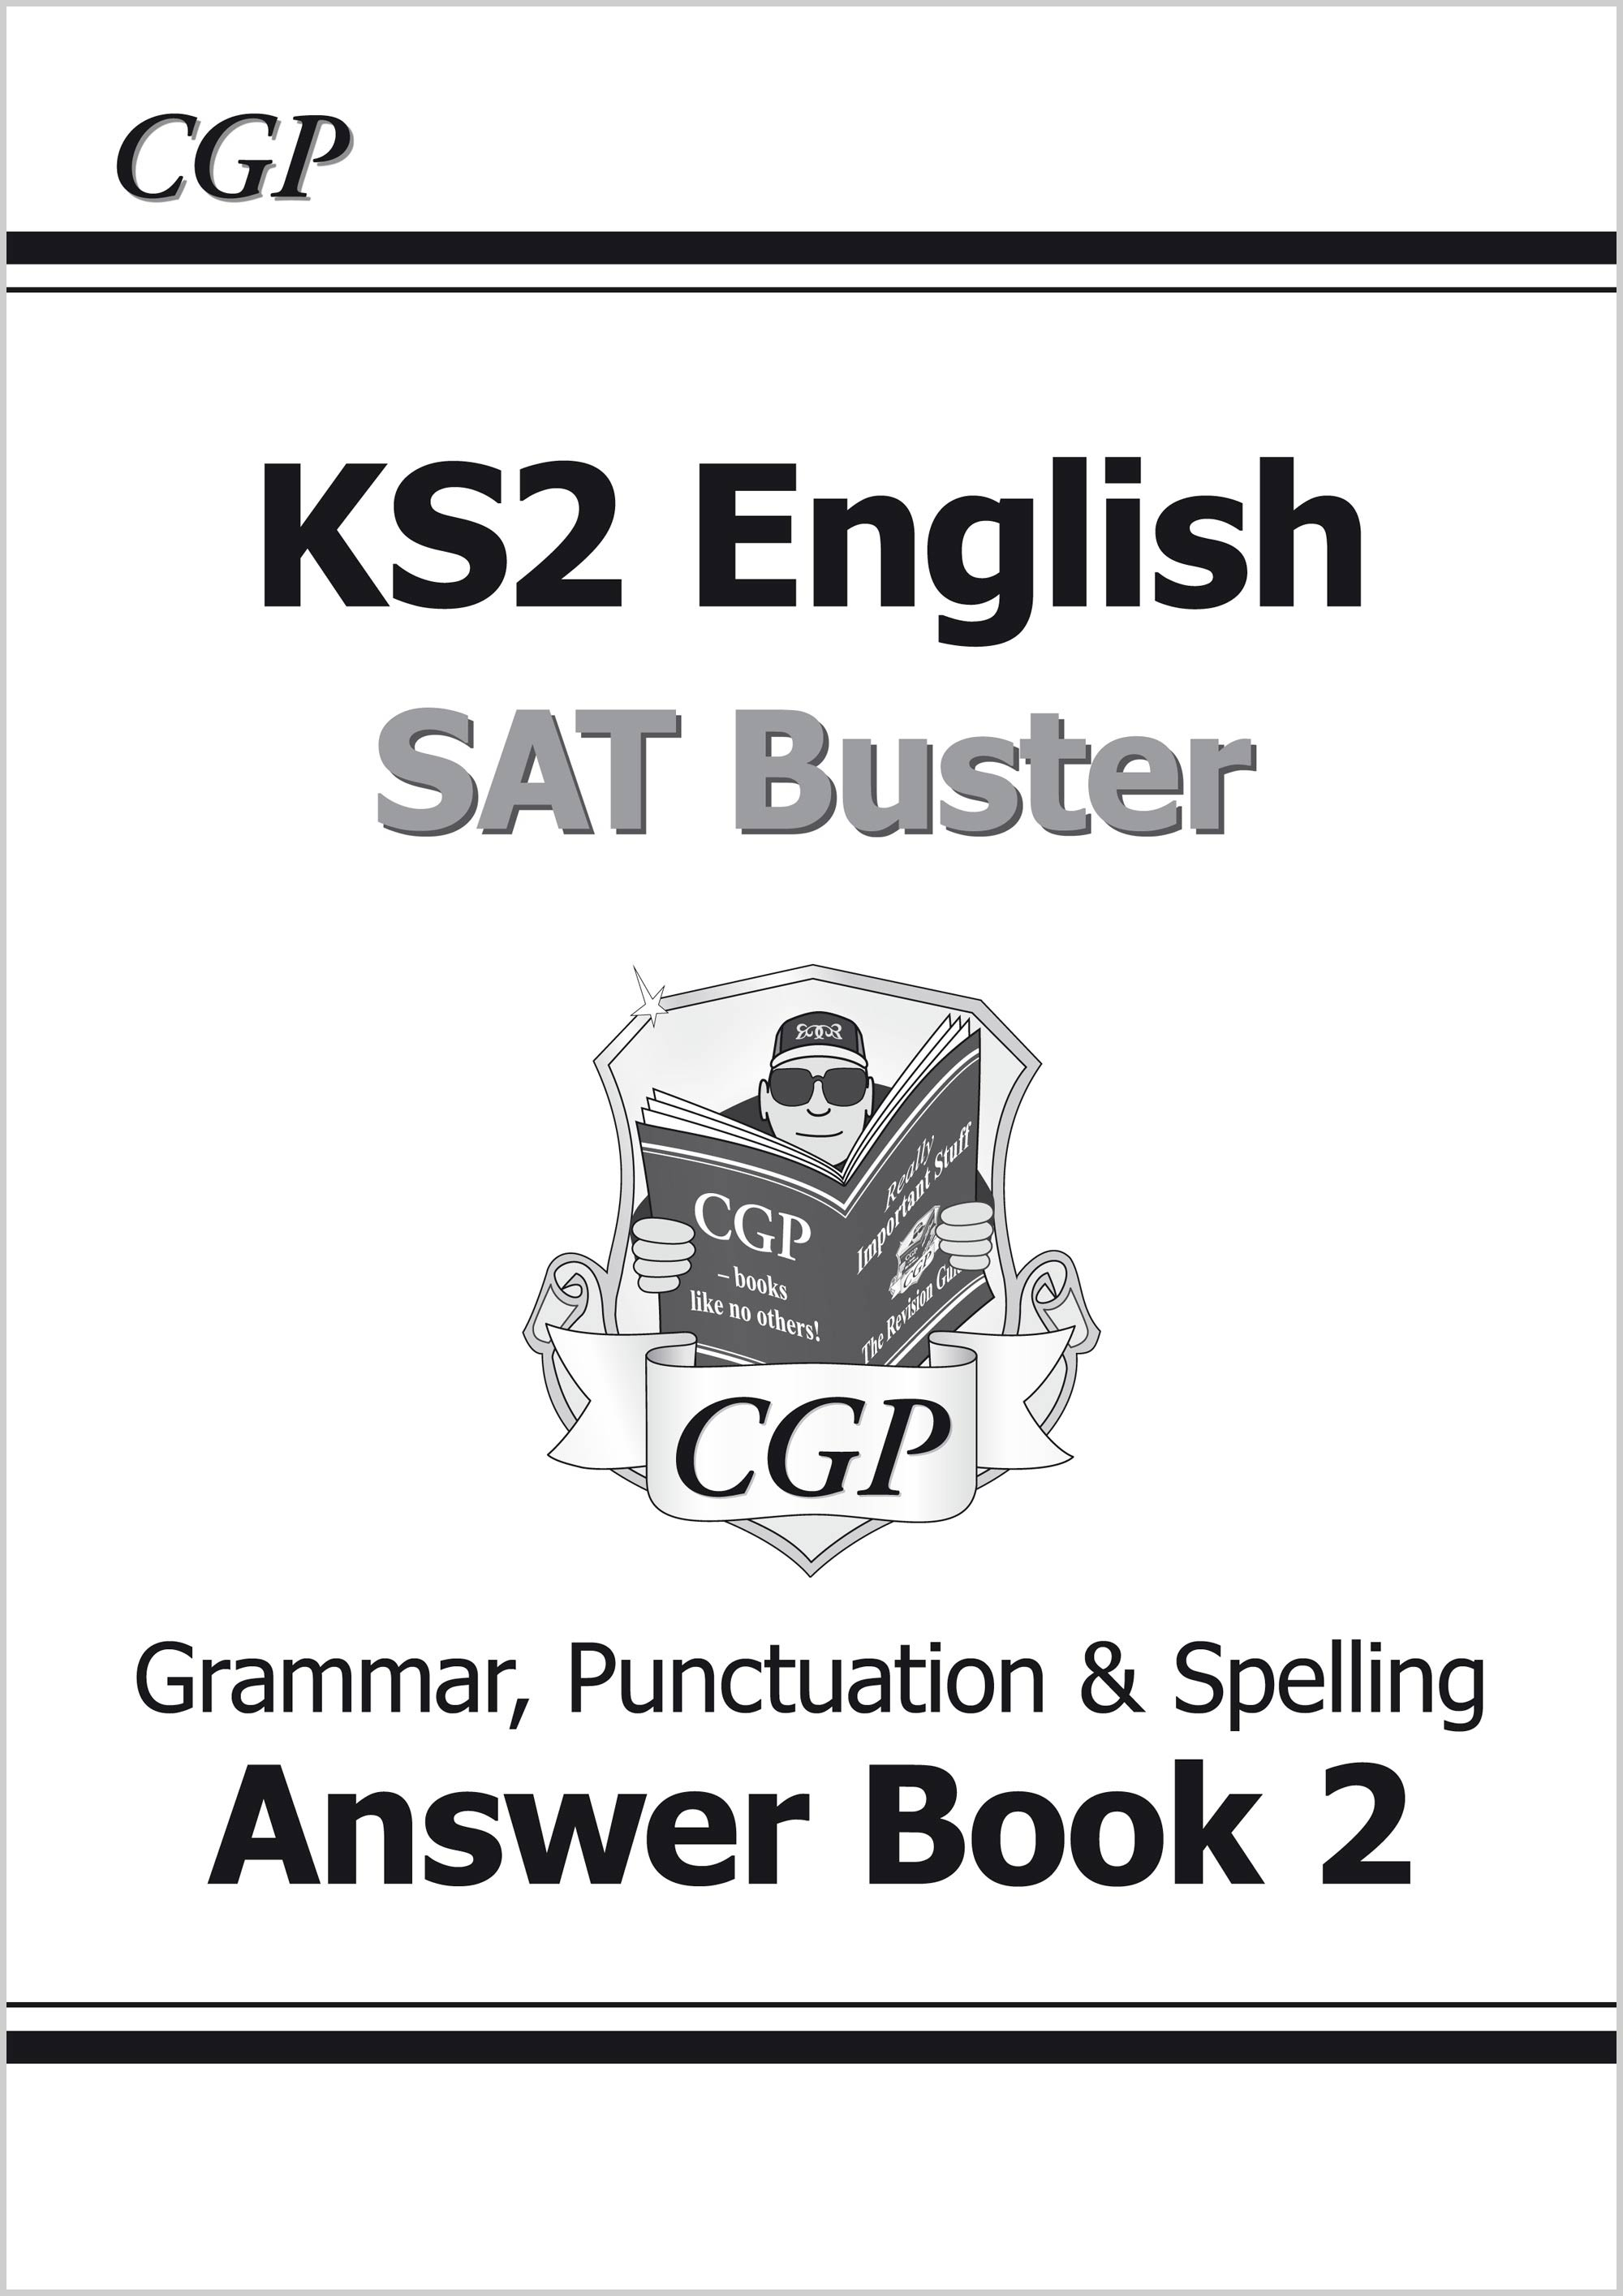 E6GA222 - KS2 English SAT Buster Book 2 Answers - Grammar, Punctuation & Spelling (for the 2019 test